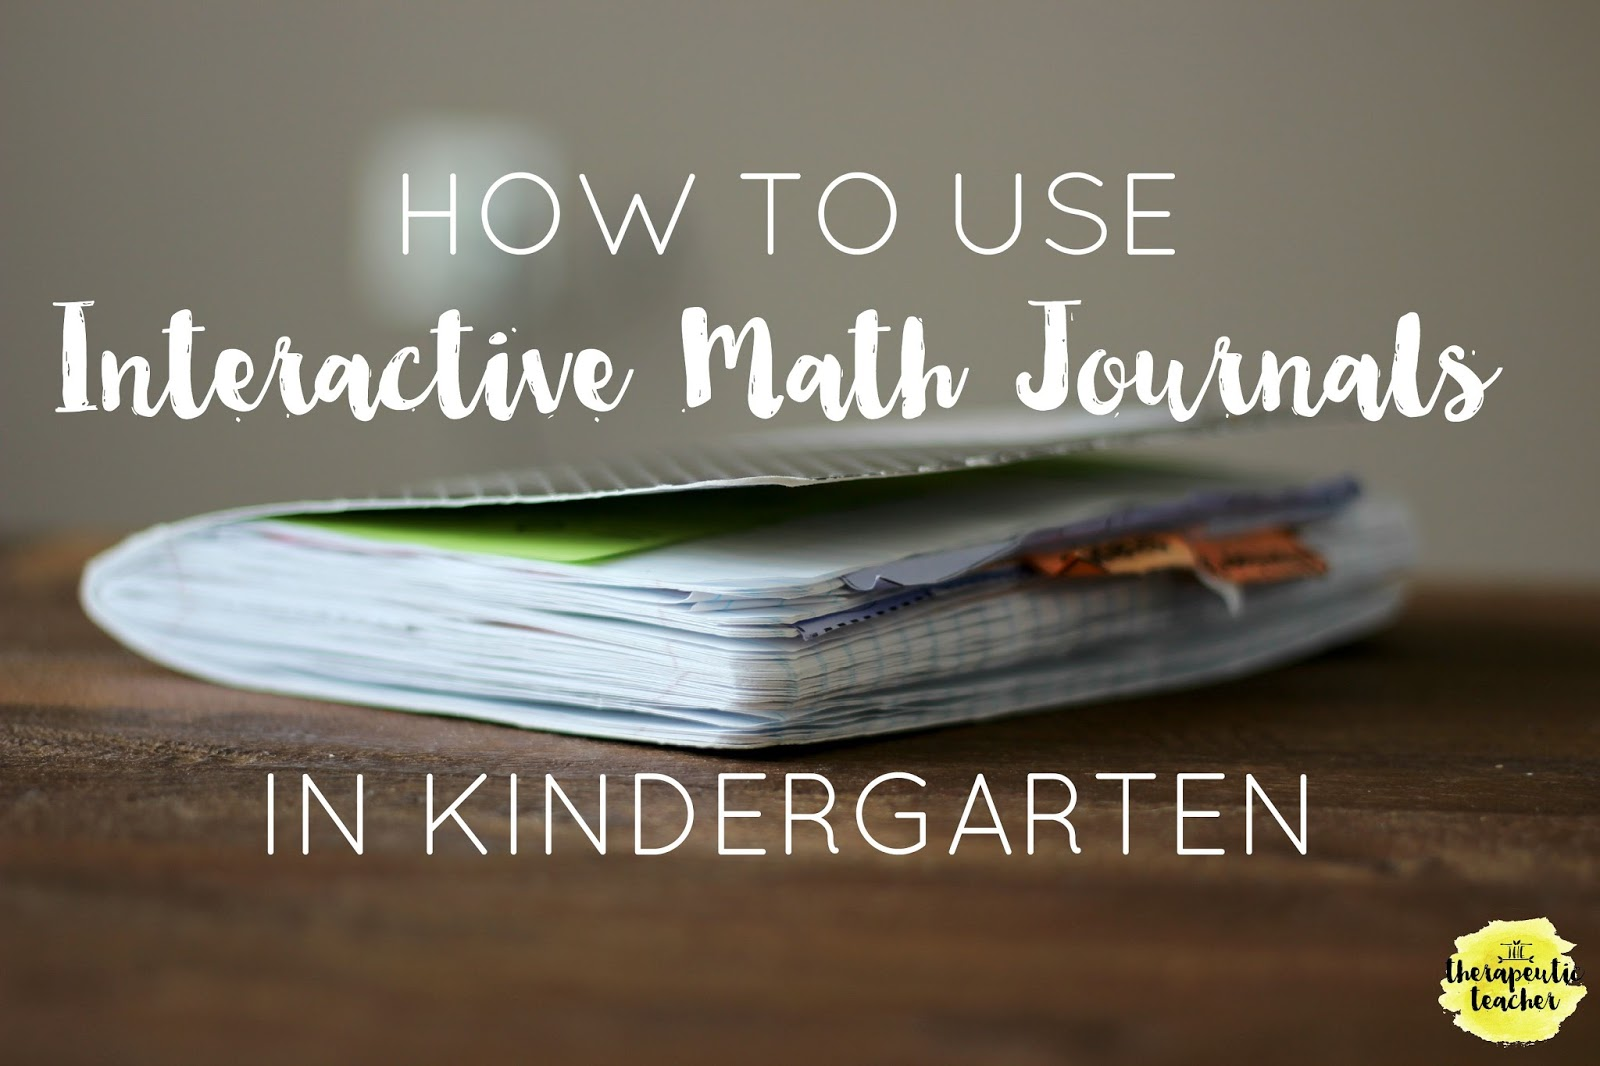 Kinder Interactive Math Journals | The Therapeutic Teacher